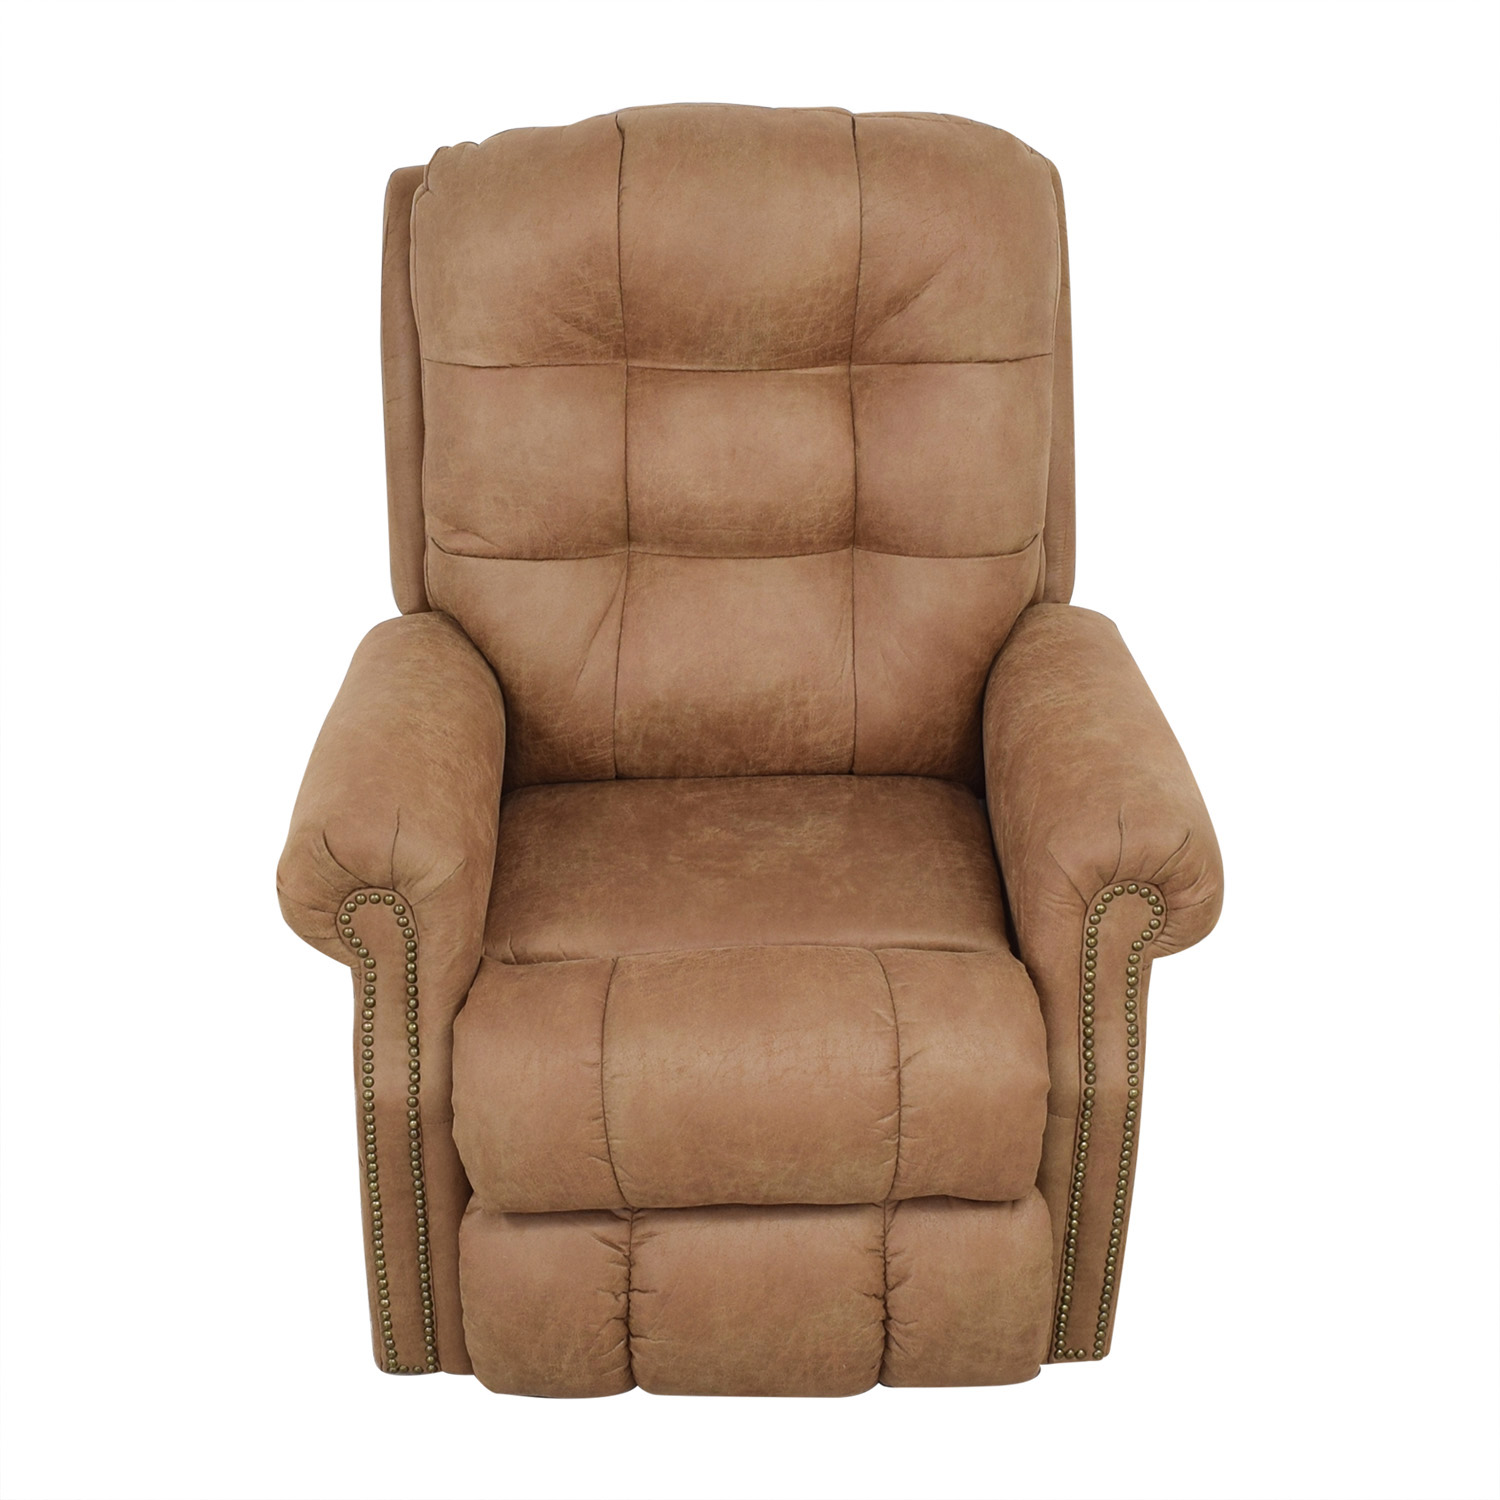 Catnapper Ramsey Lift Recliner / Chairs